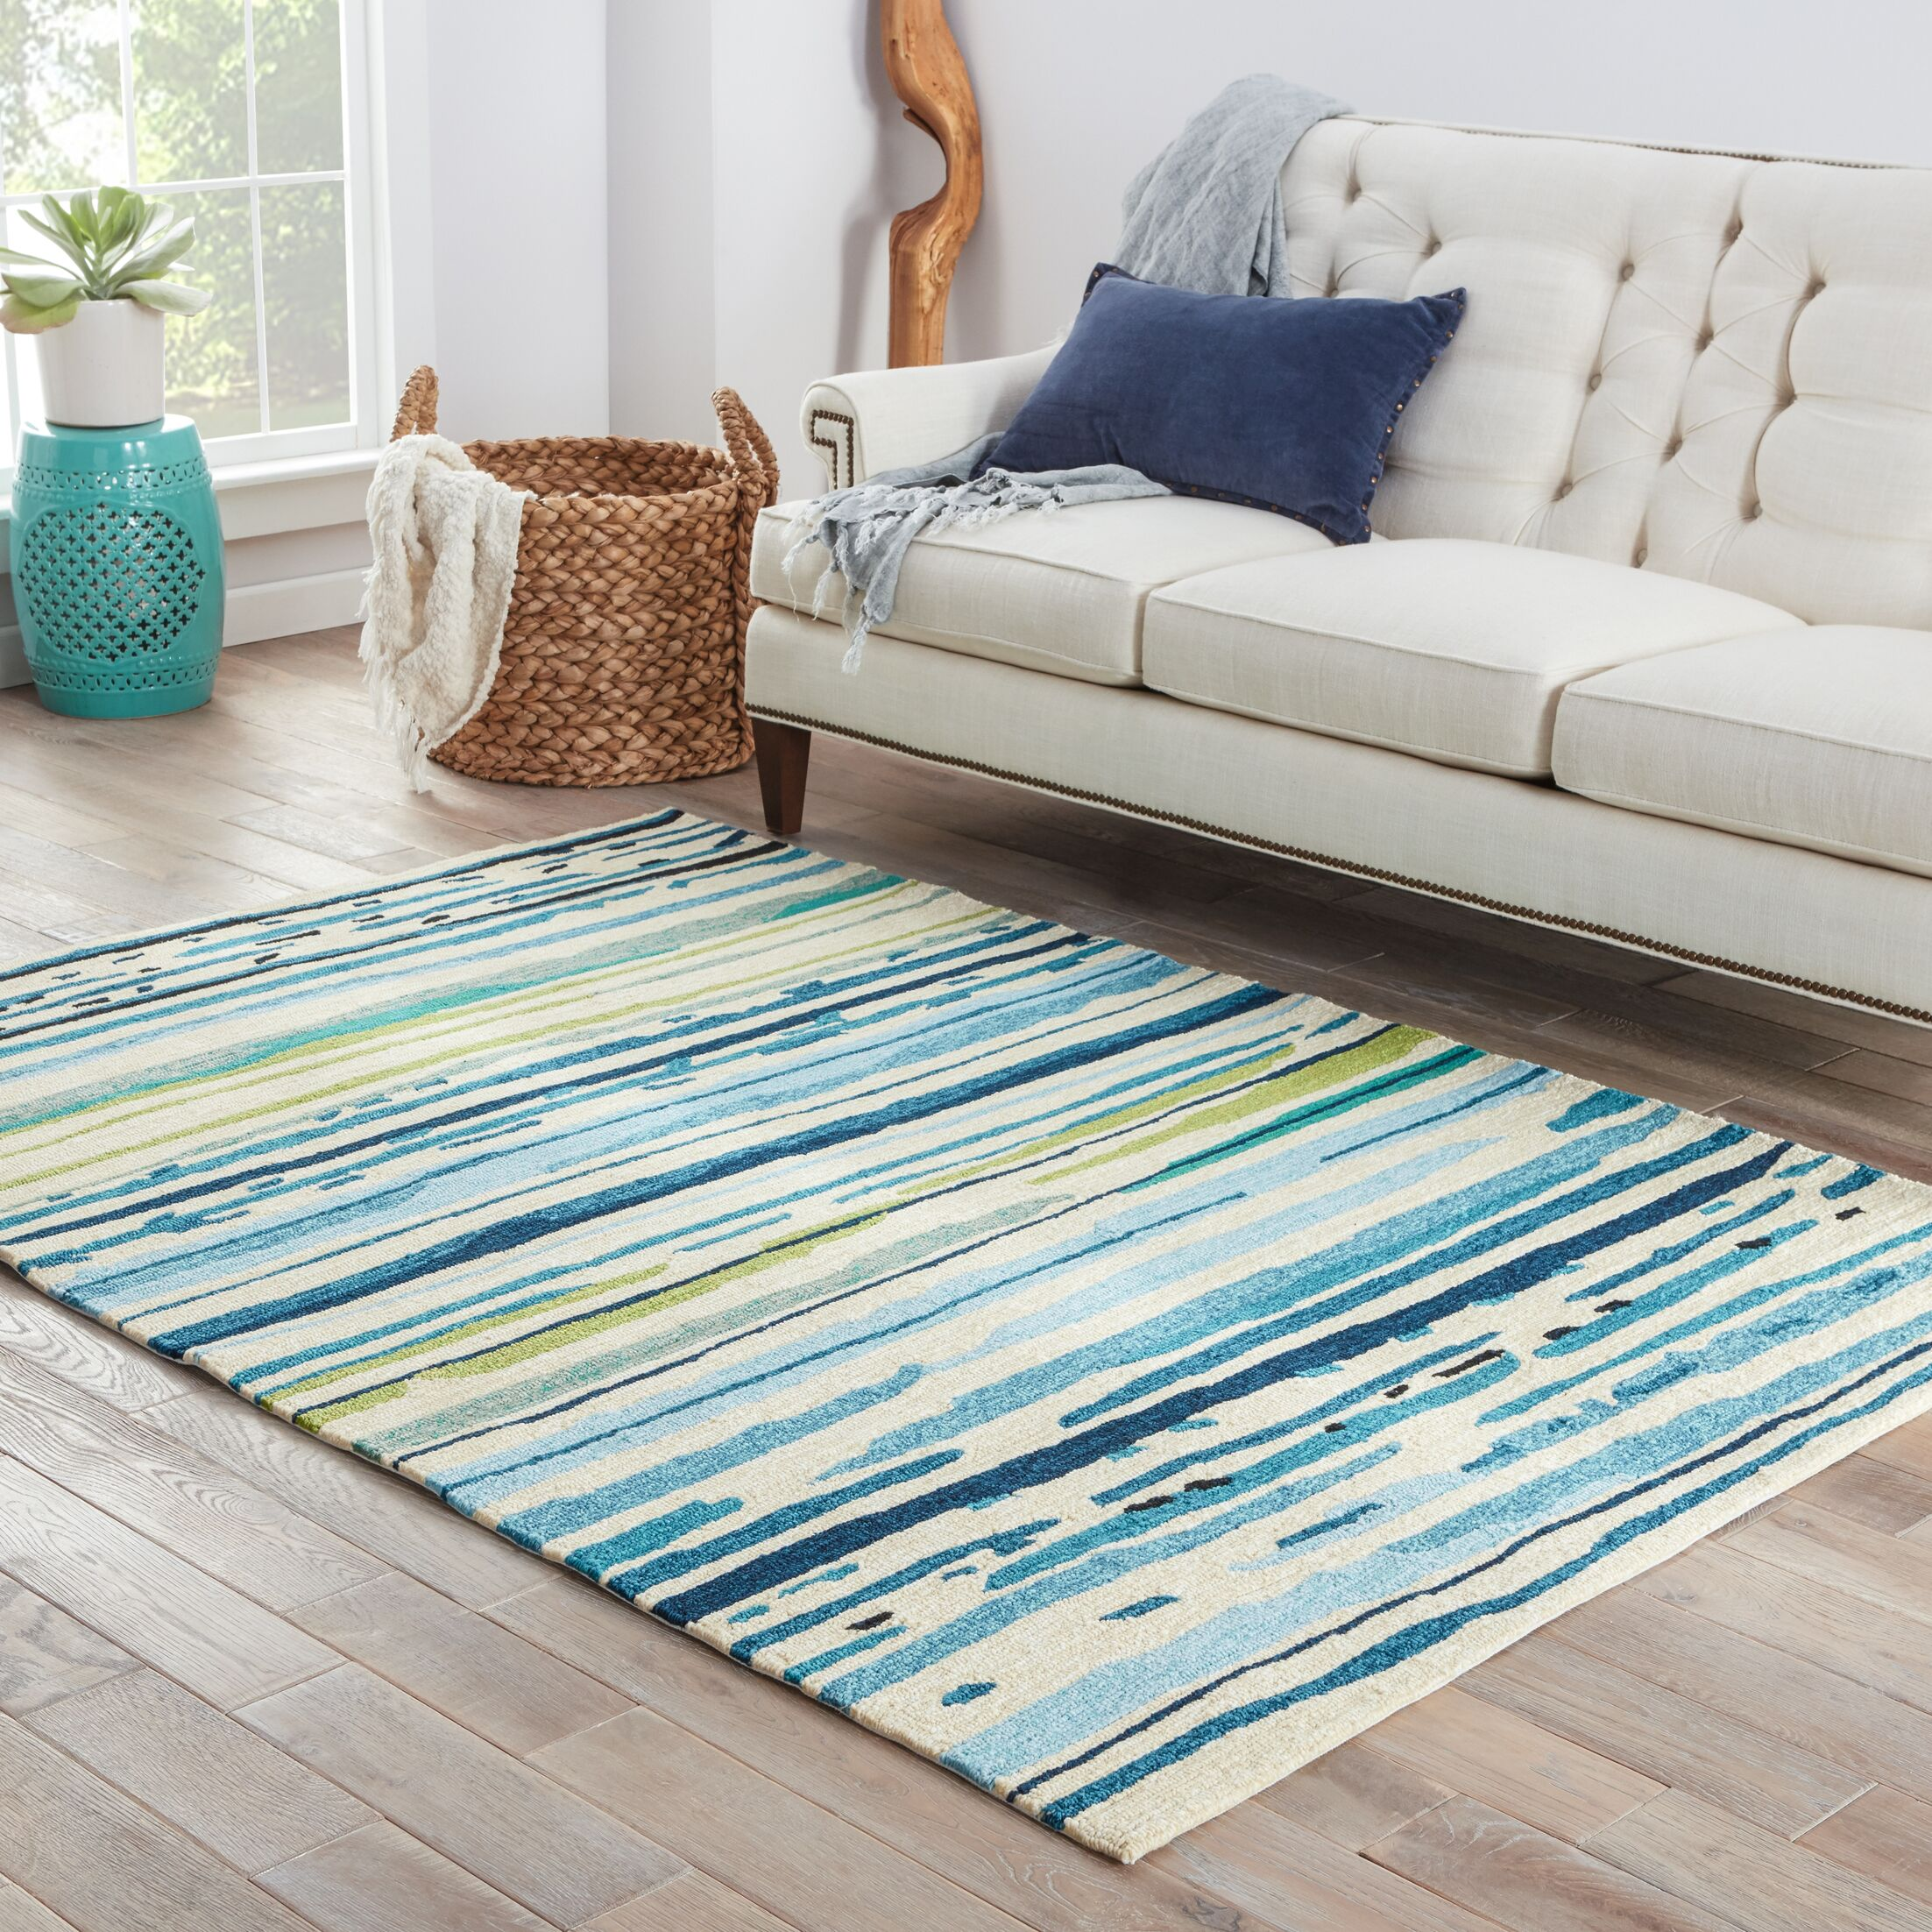 Angelina Hand-Hooked Polypropylene Blue/Green Outdoor Area Rug Rug Size: Rectangle 5' x 7'6